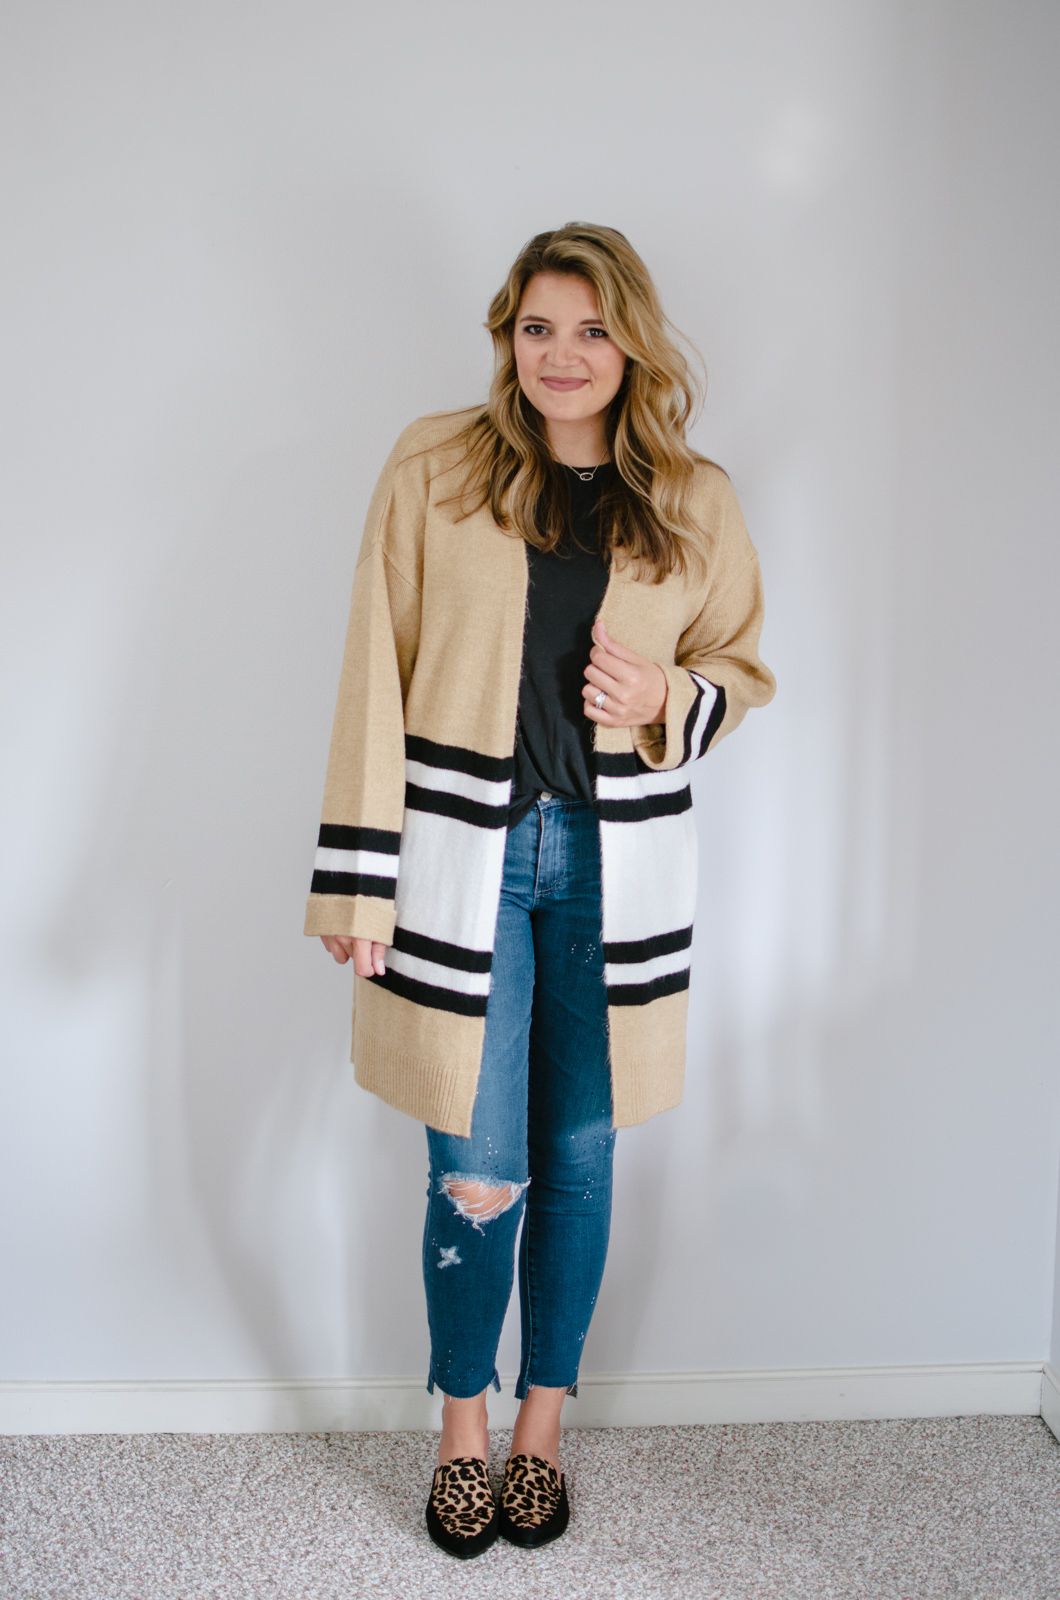 nordstrom anniversary sale outfit ideas - click through for nordstrom anniversary sale reviews and outfits! | bylaurenm.com